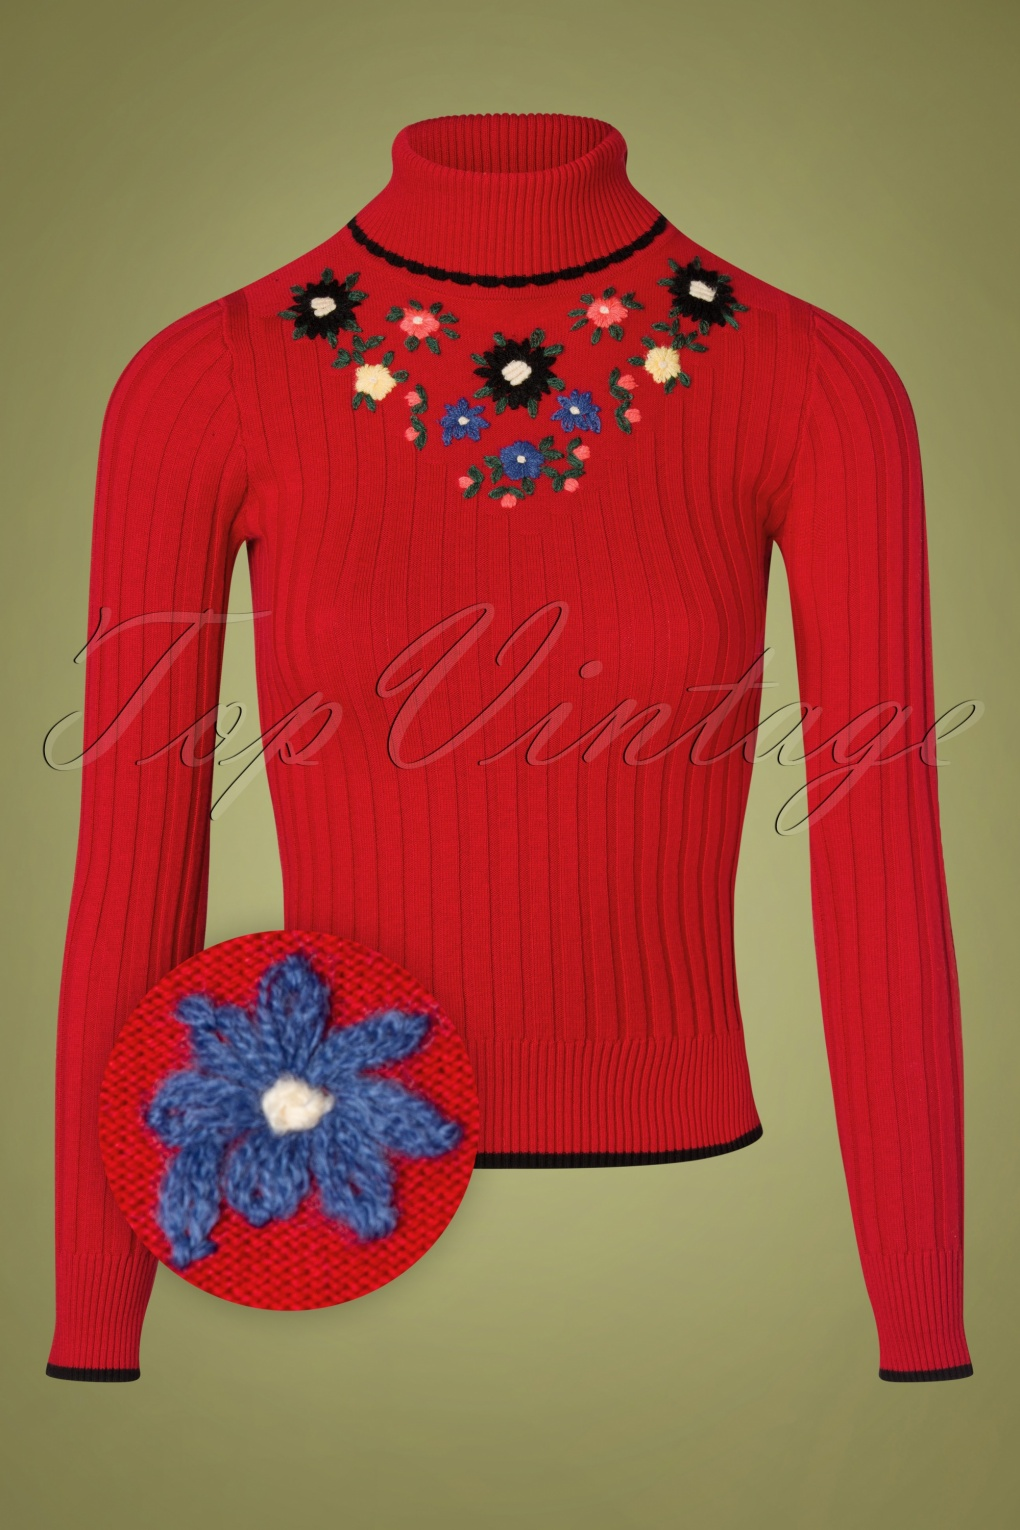 60s 70s Style Sweaters, Cardigans & Jumpers 60s Cheri Fleur Turtleneck Sweater in Chili Red £90.49 AT vintagedancer.com